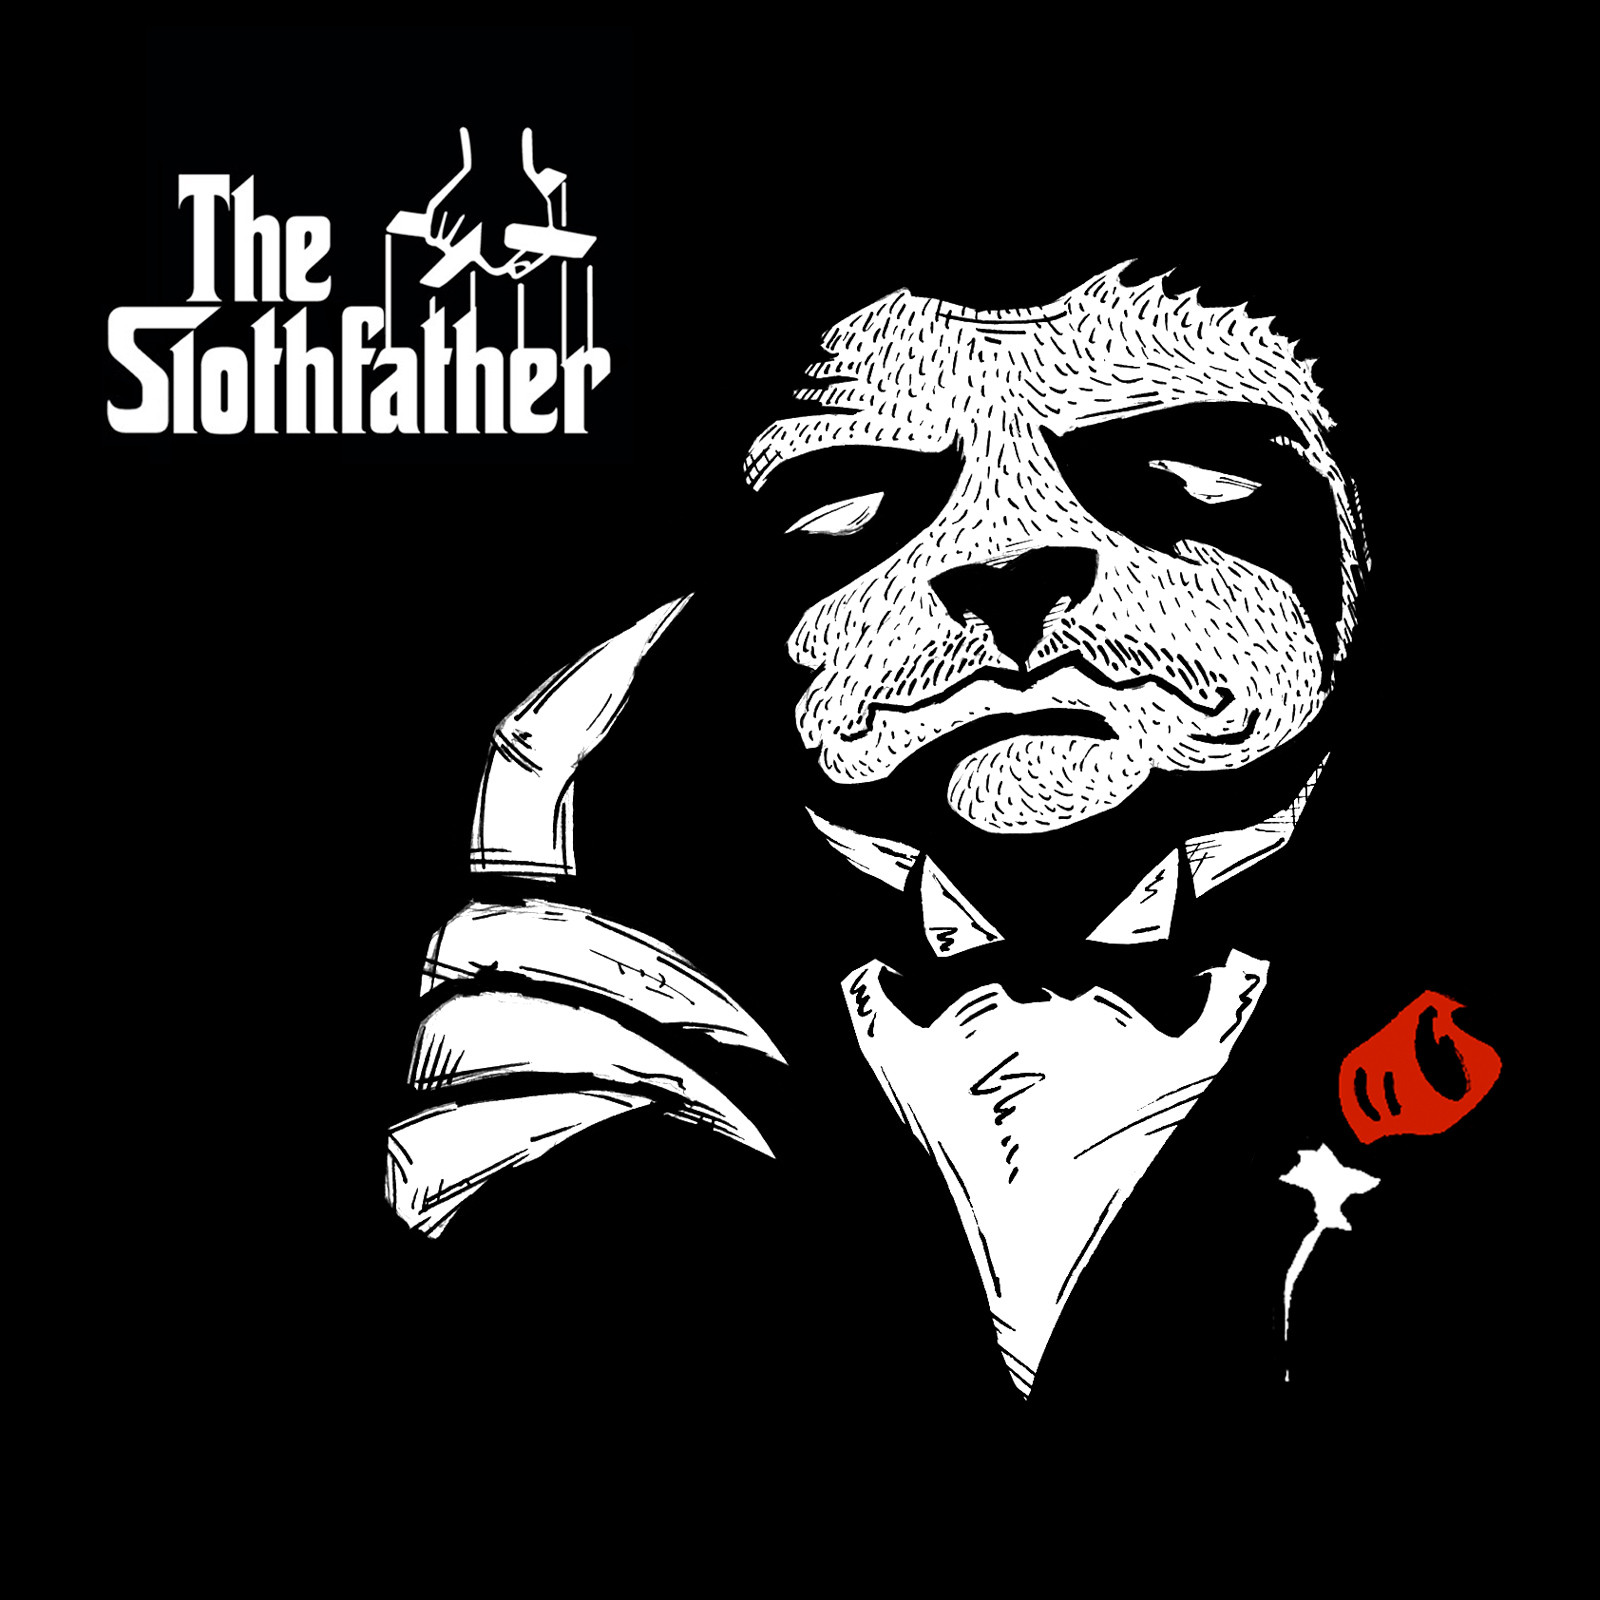 Slothfather godfather spoof parody greet